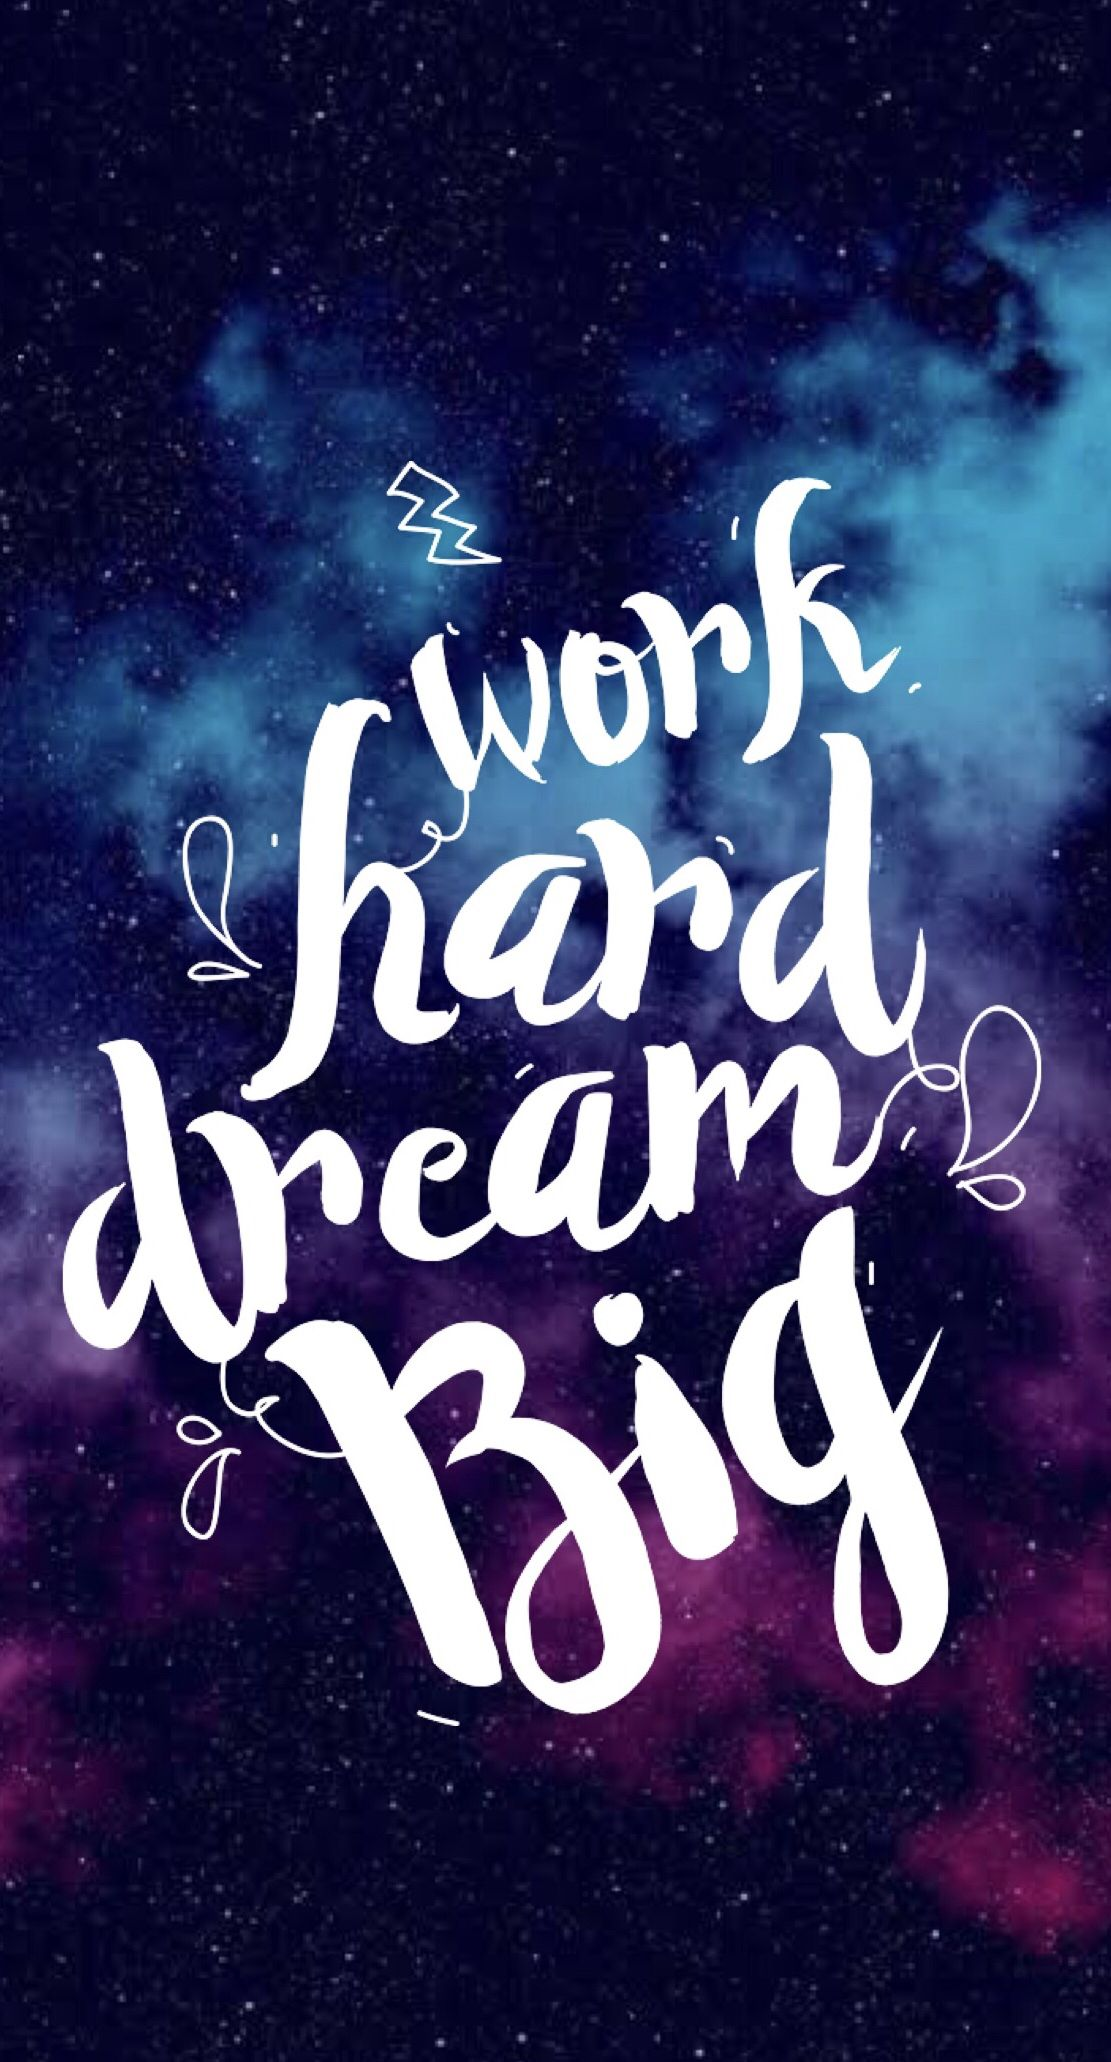 Dream big   Inspirational quotes wallpapers, Positive quotes ...